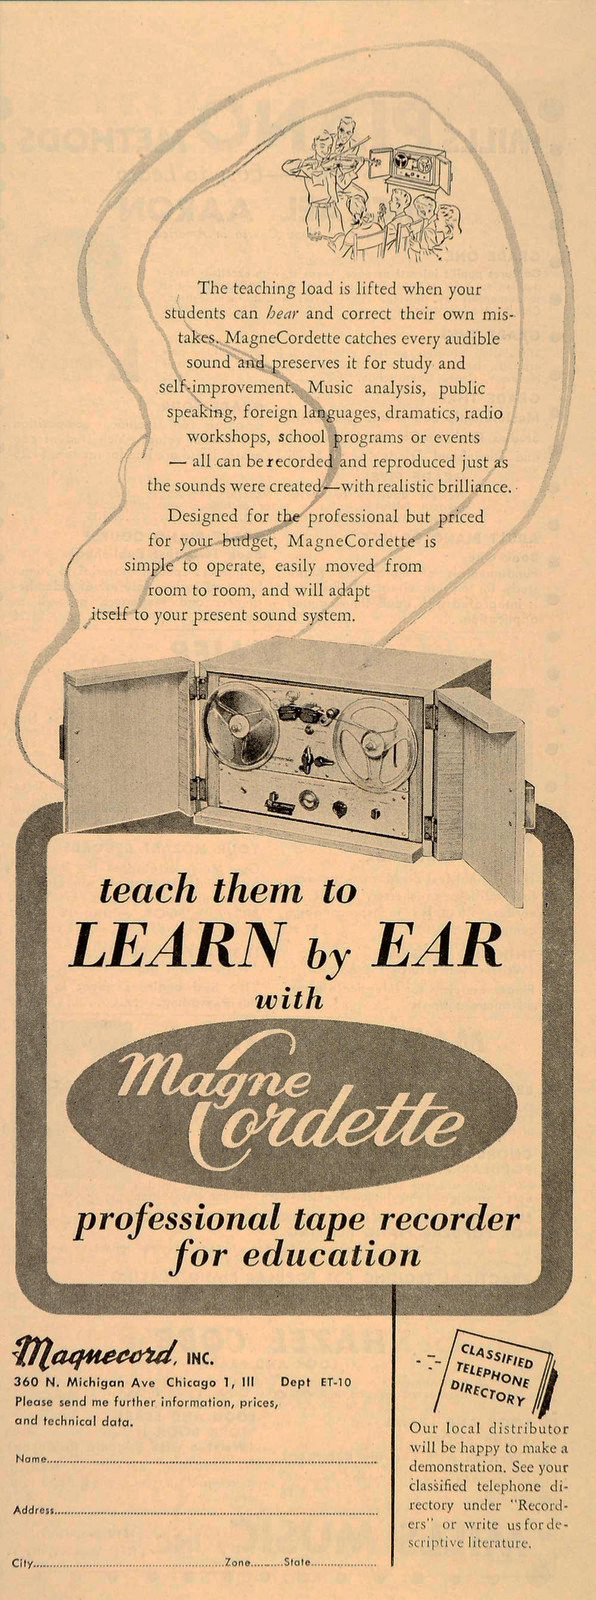 1952 ad for the Magnecord reel to reel tape recorder in the Reel2ReelTexas.com MOMSR vintage recording collection